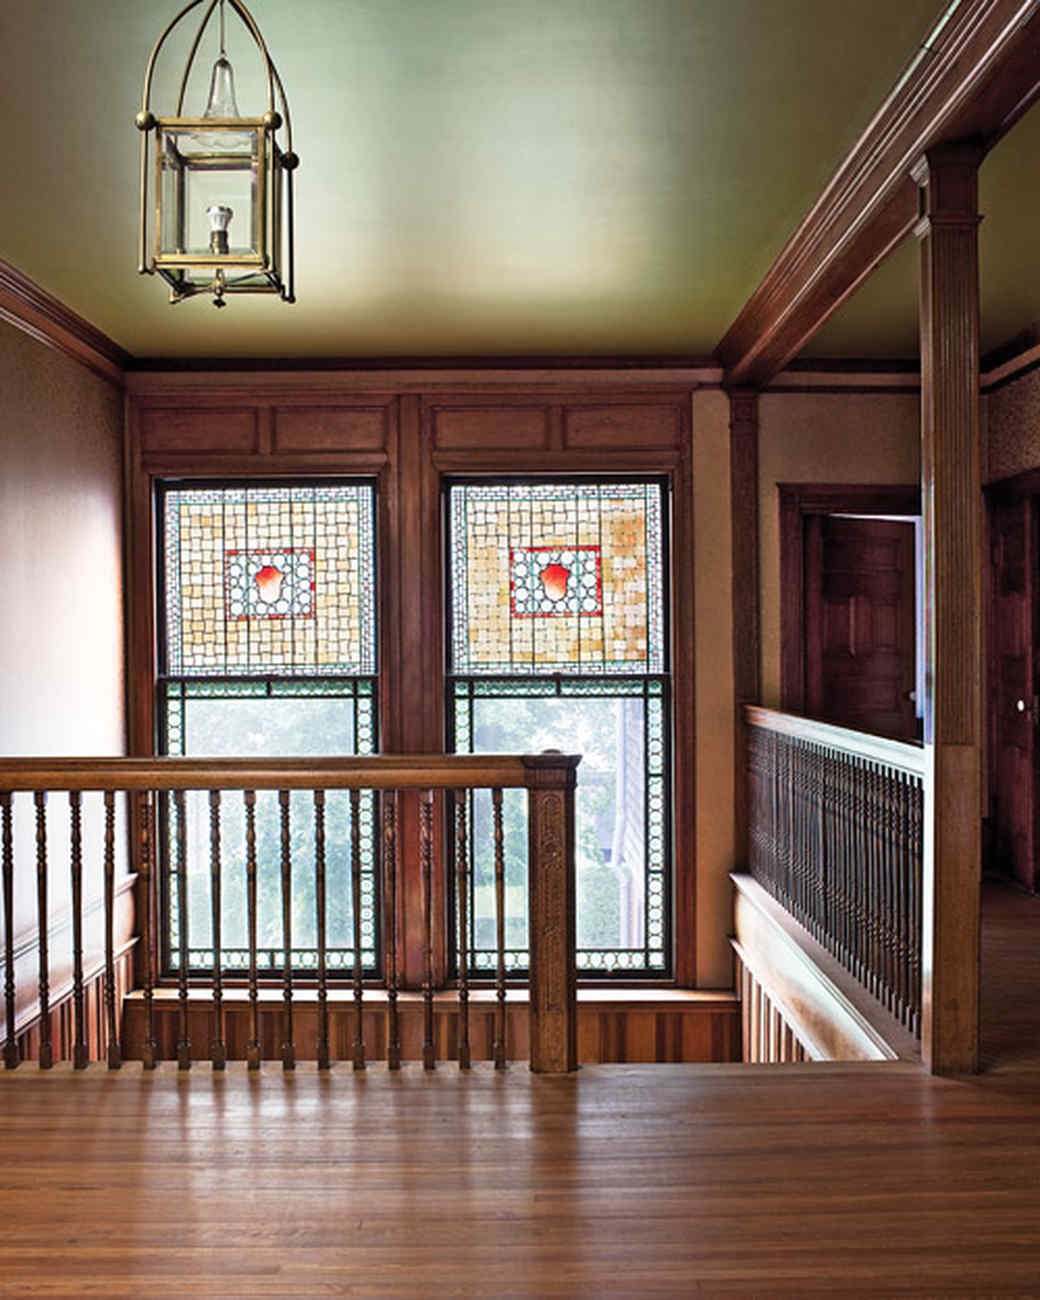 Isaac bell house in newport ri martha stewart - Arts and crafts bungalow interiors ...